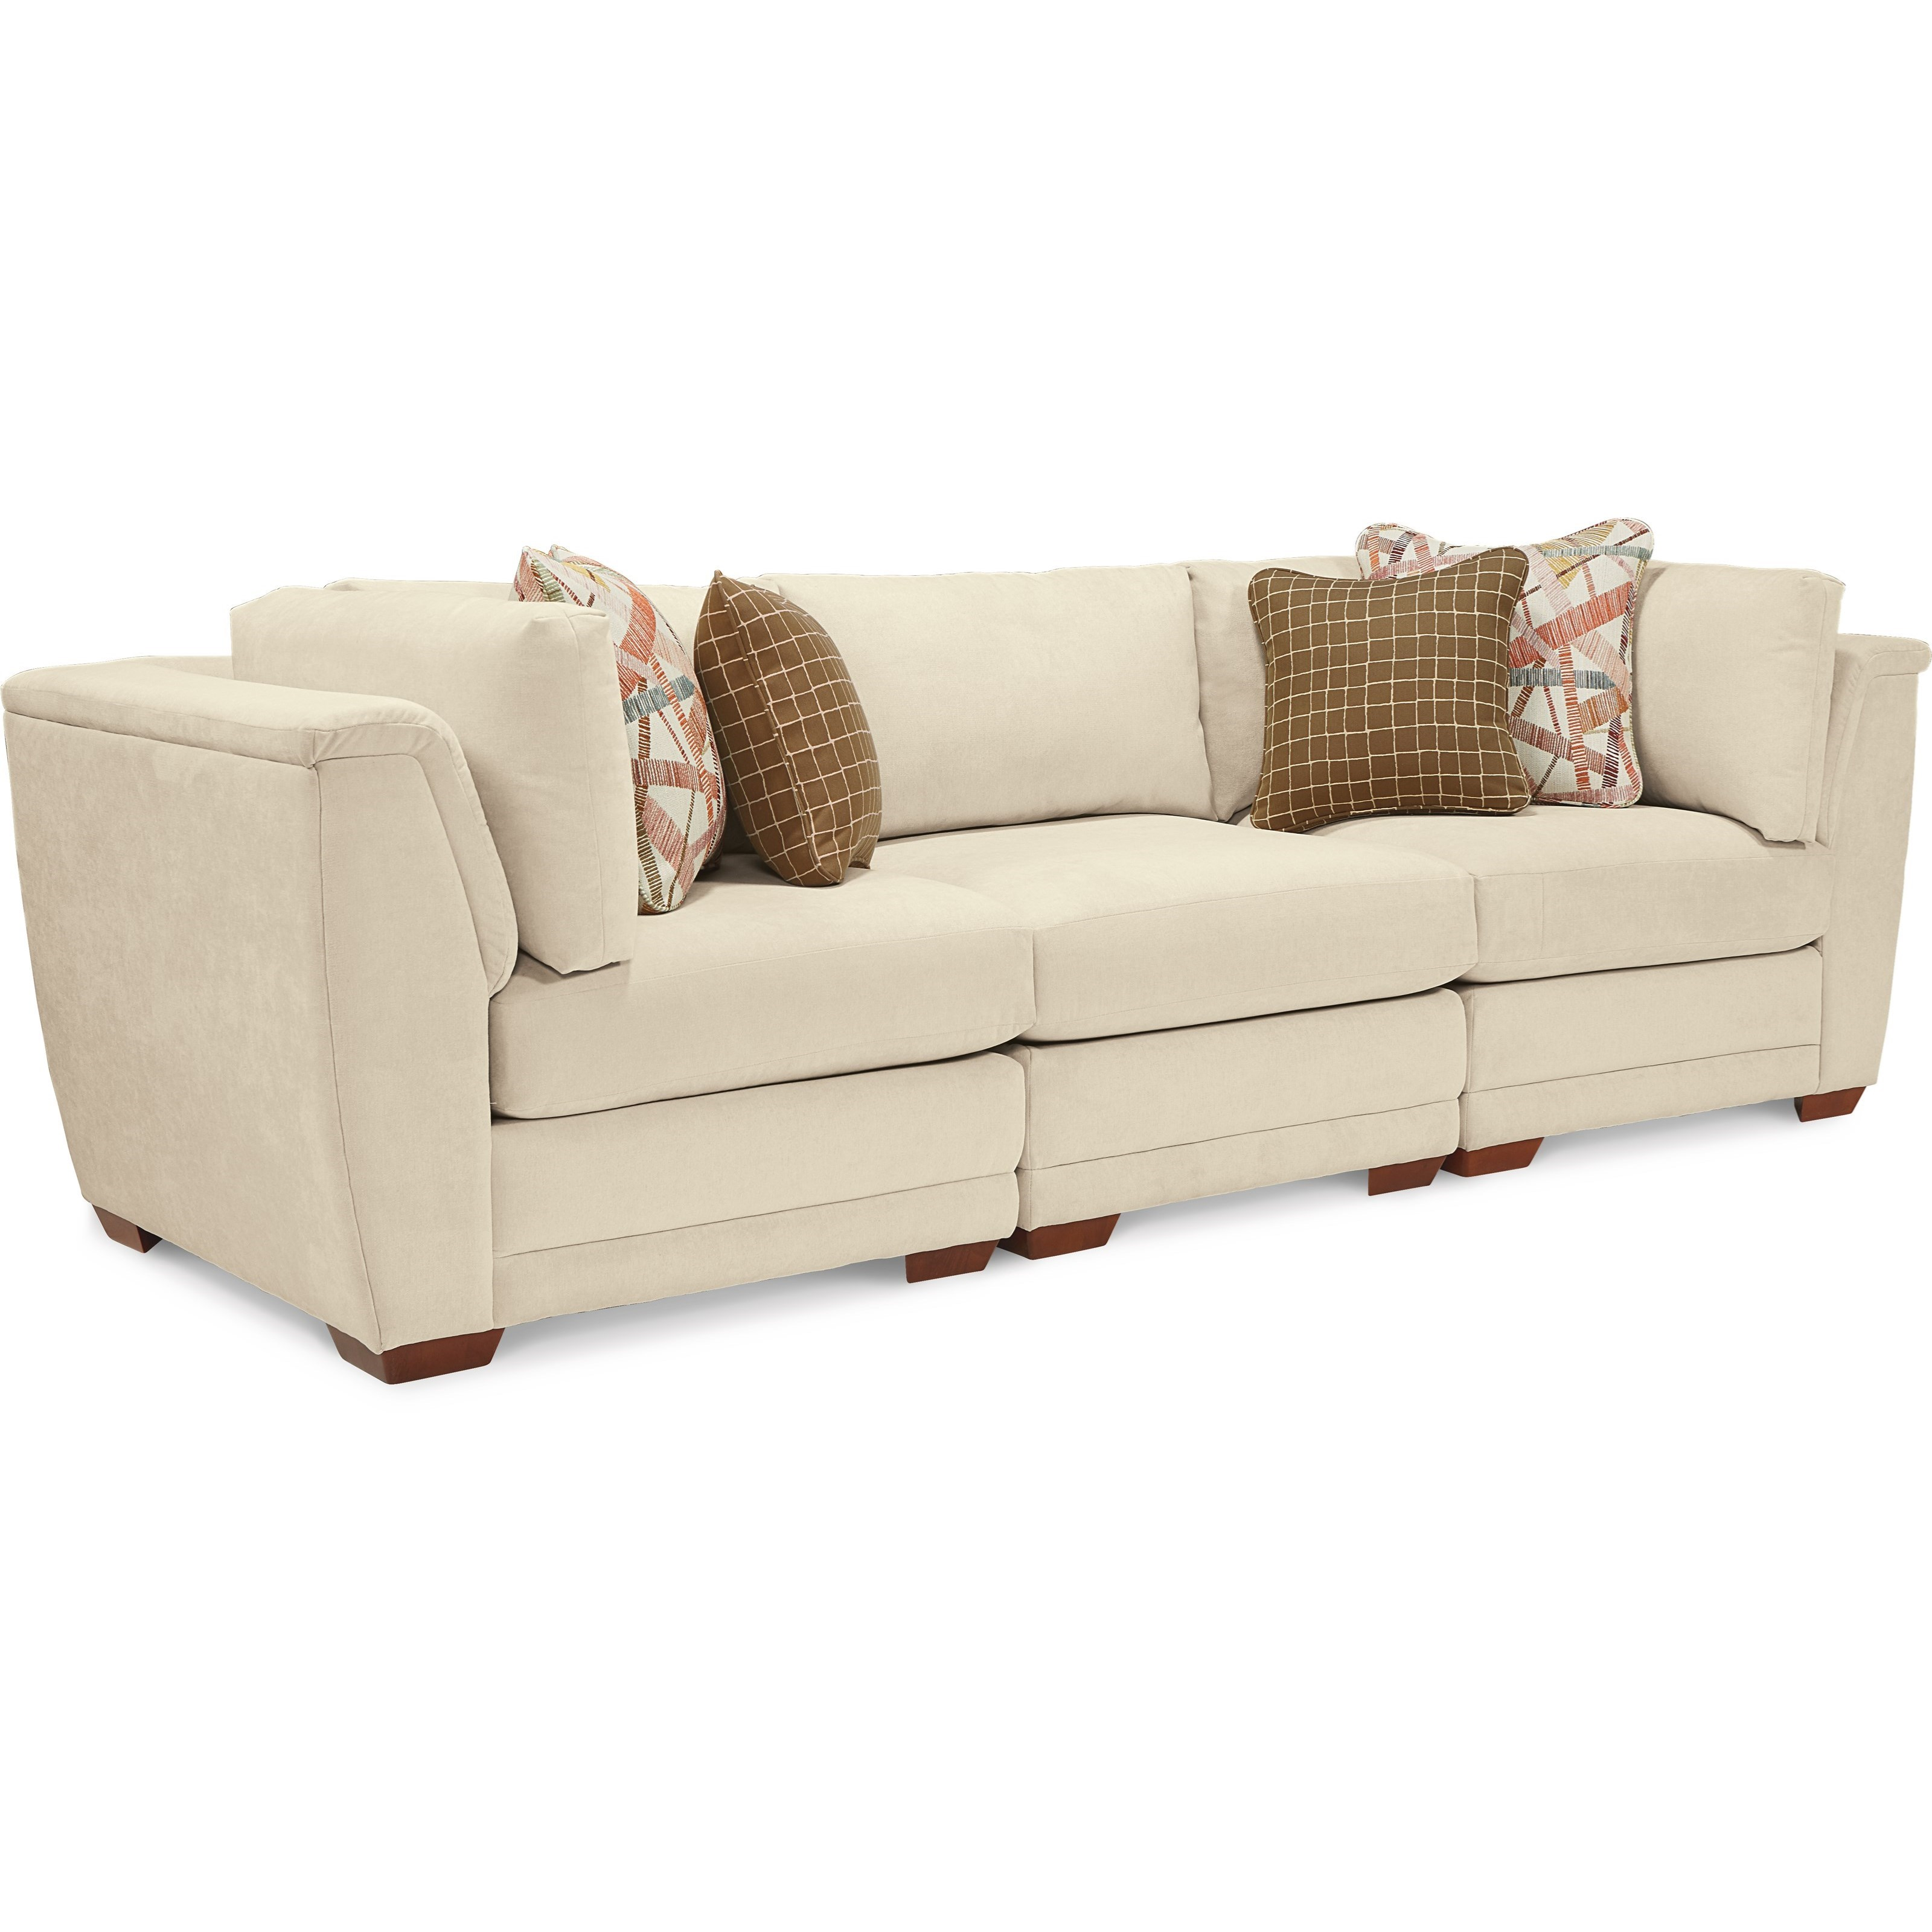 3 Piece Sectional Sofa With Tapered Block Feet By La Z Boy